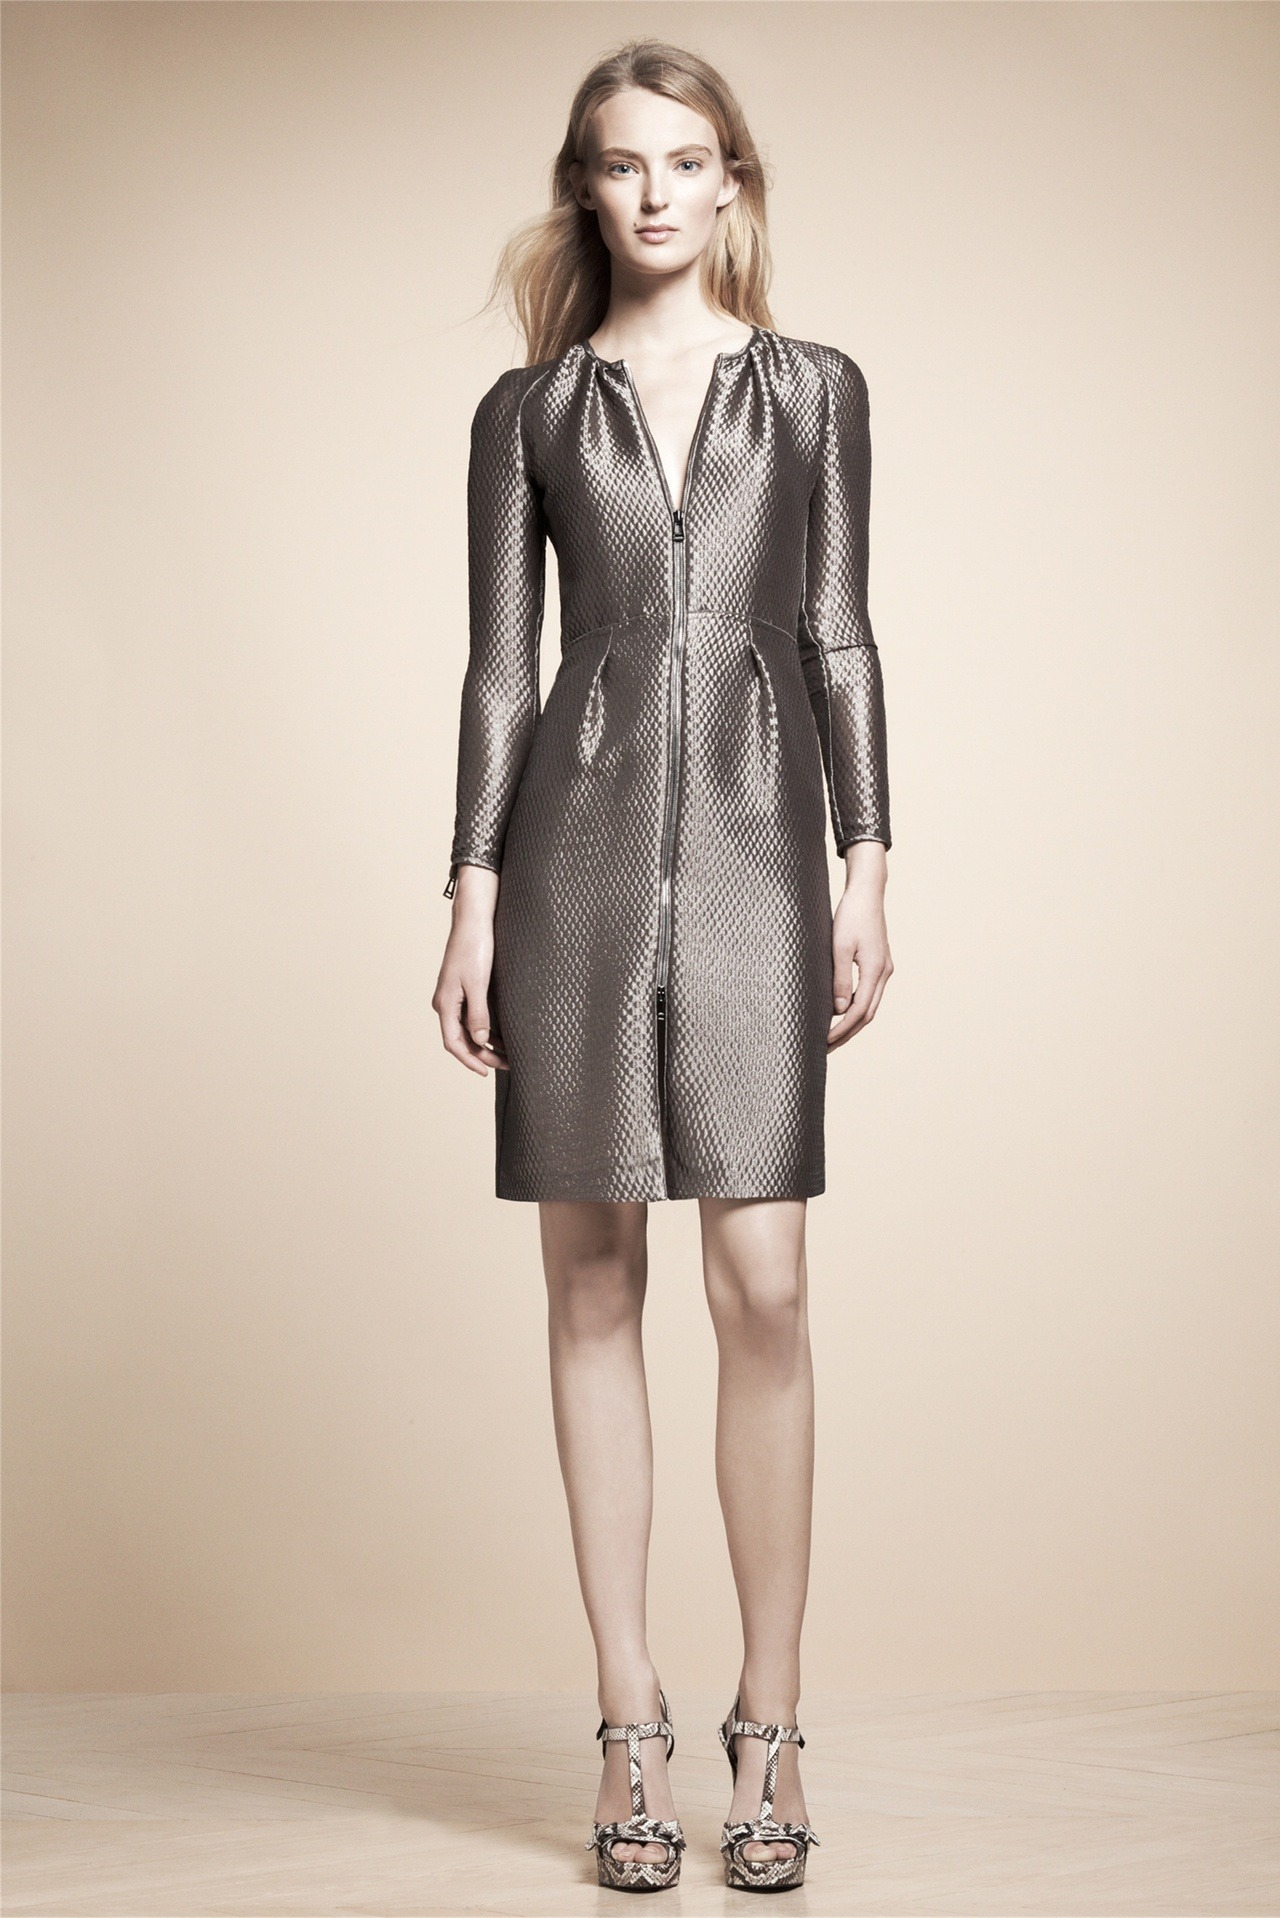 Ymre Stiekema for Belstaff, resort 2013